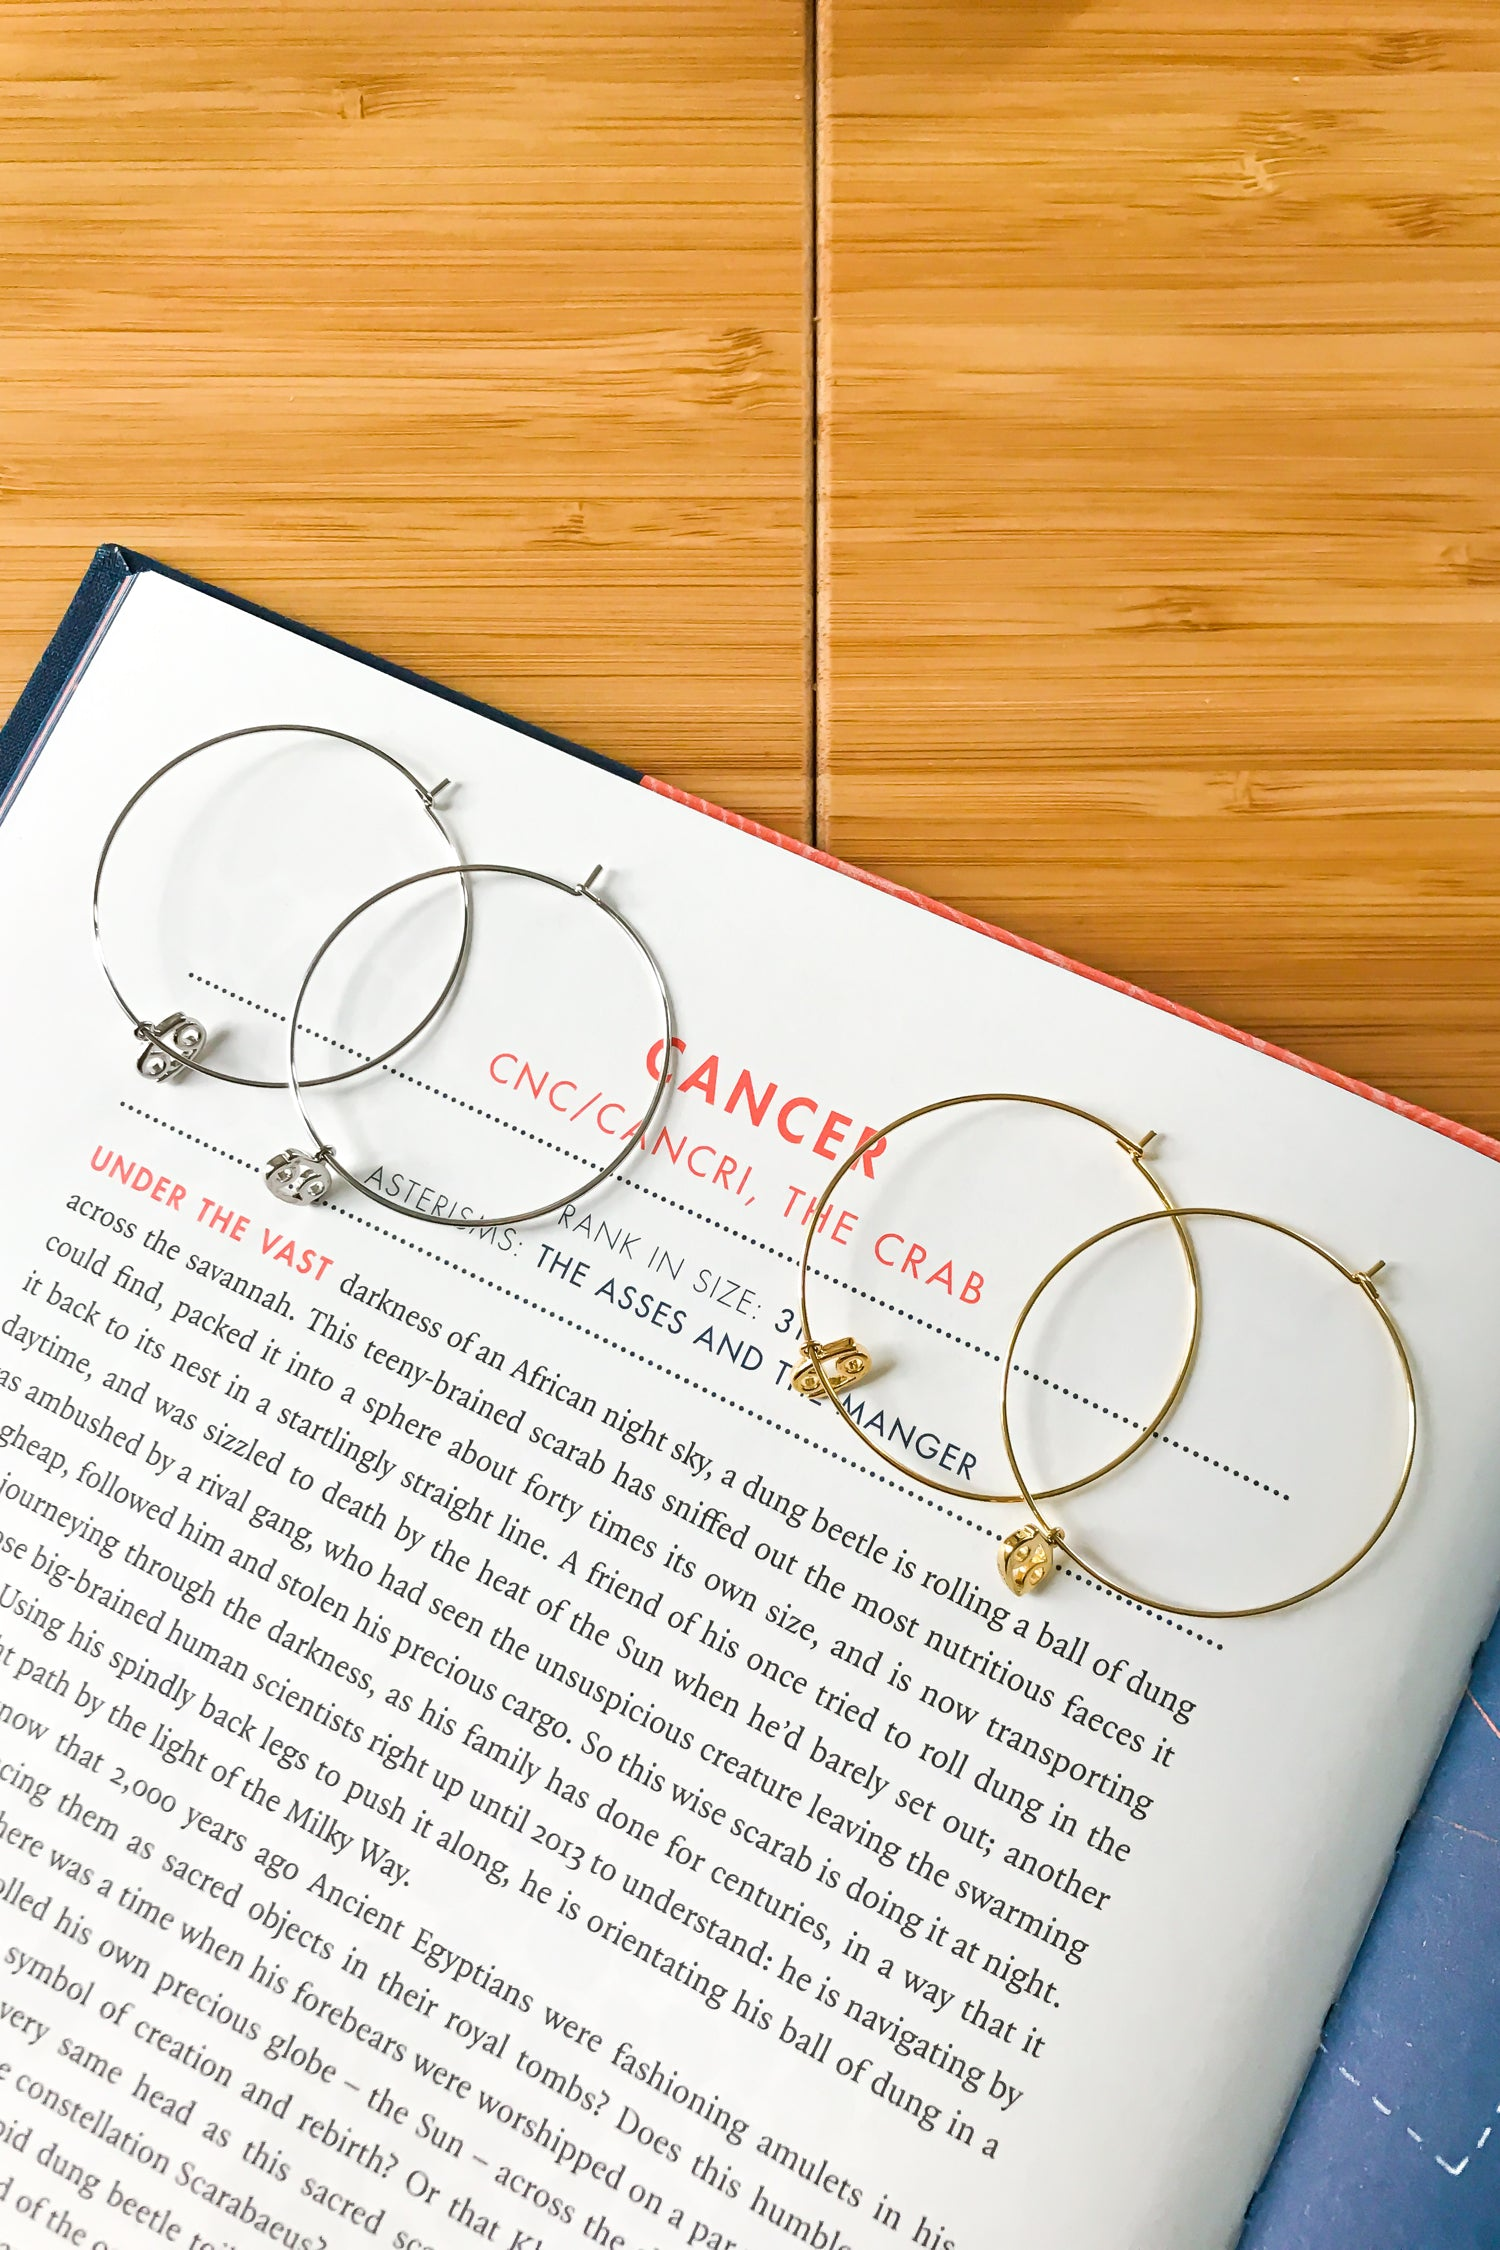 Cancer mega hoop earrings